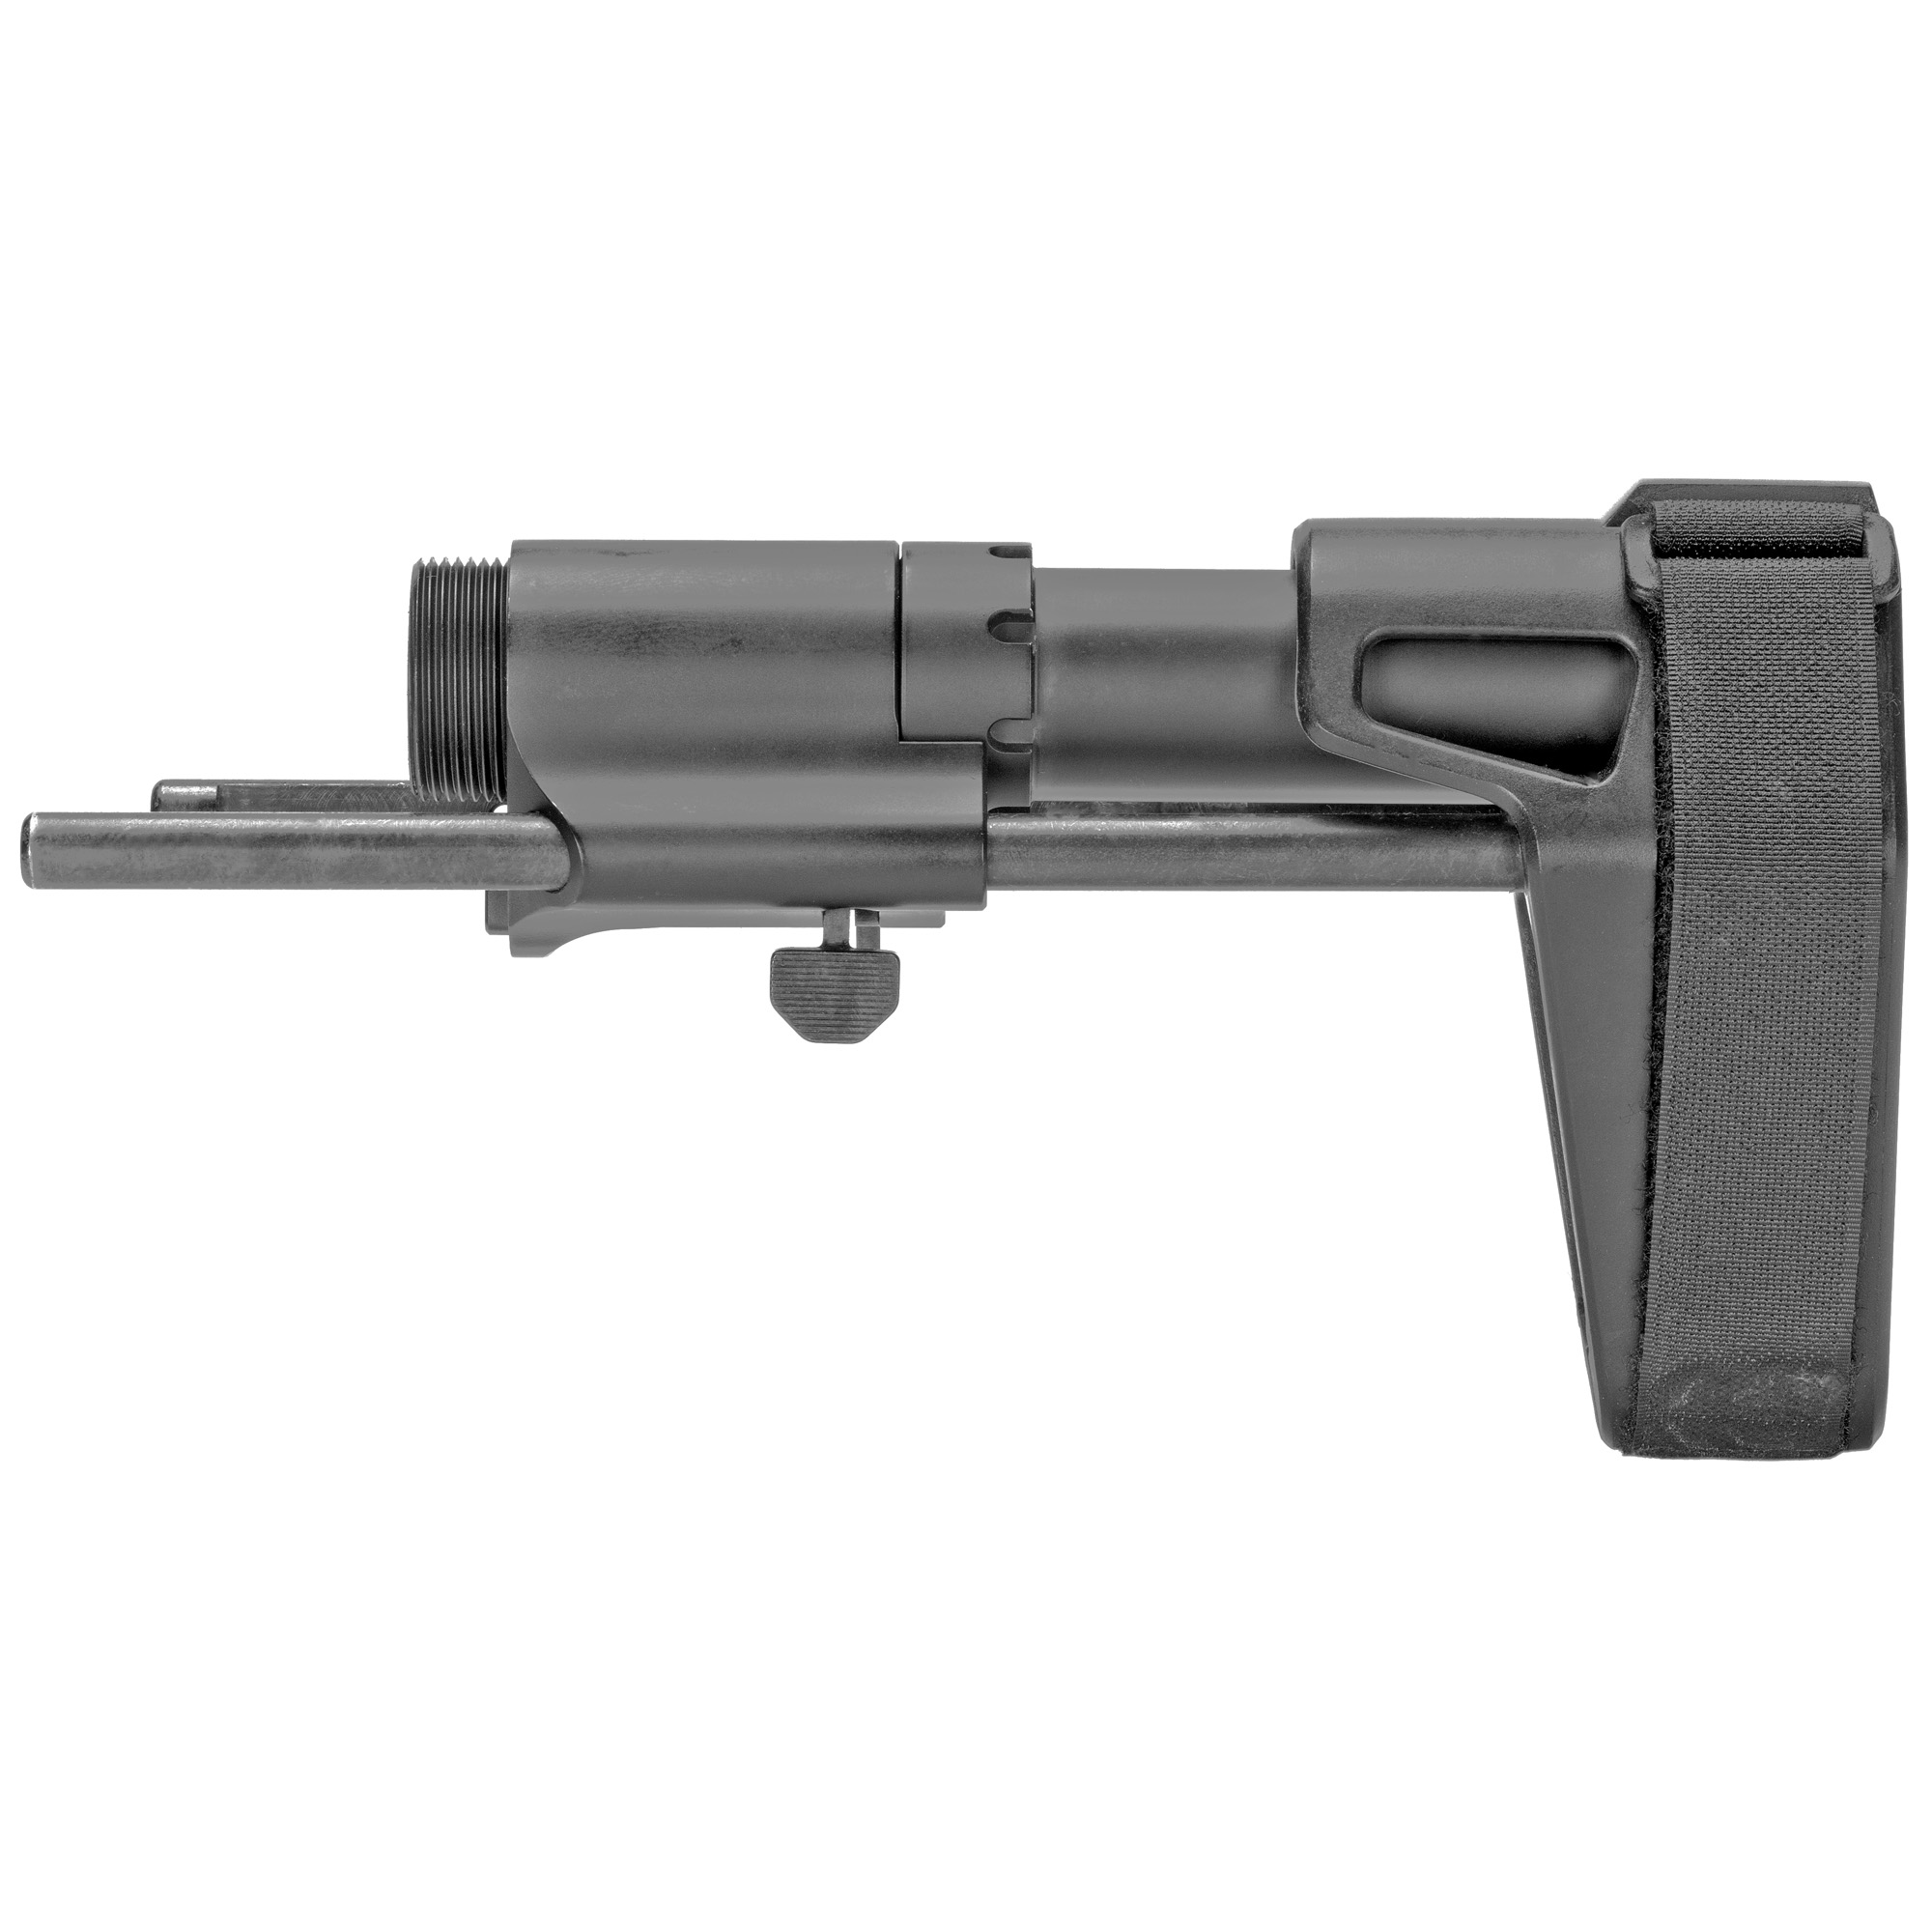 SB Tactical AR Pistol PDW Stabilizing Brace was designed in conjunction with Maxim Defense. It is three position adjustable and compatible with mil-spec bolt carrier groups and carbine buffers. Fits AR-15.